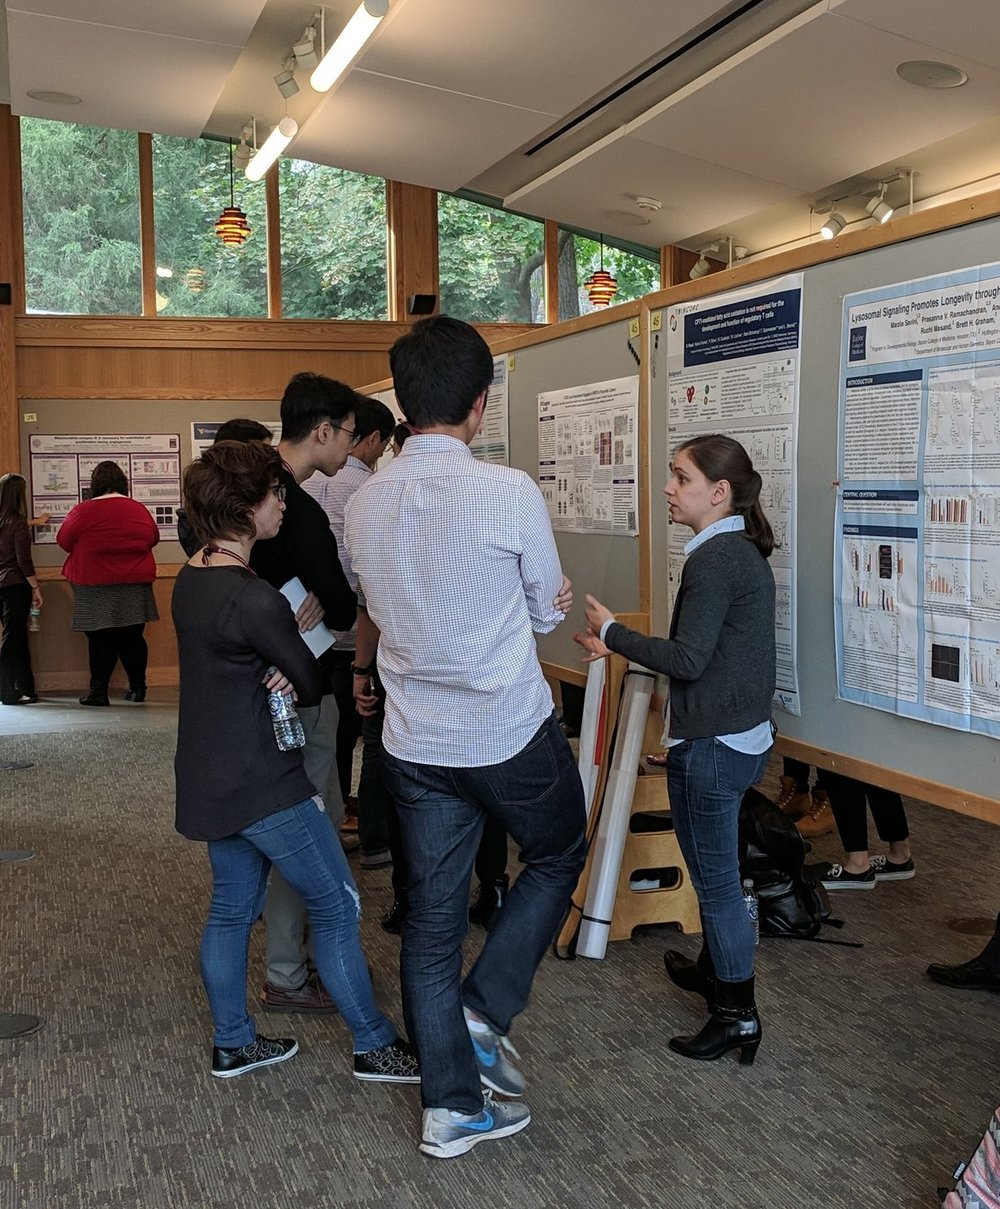 Brenda during her poster presentation at the meeting